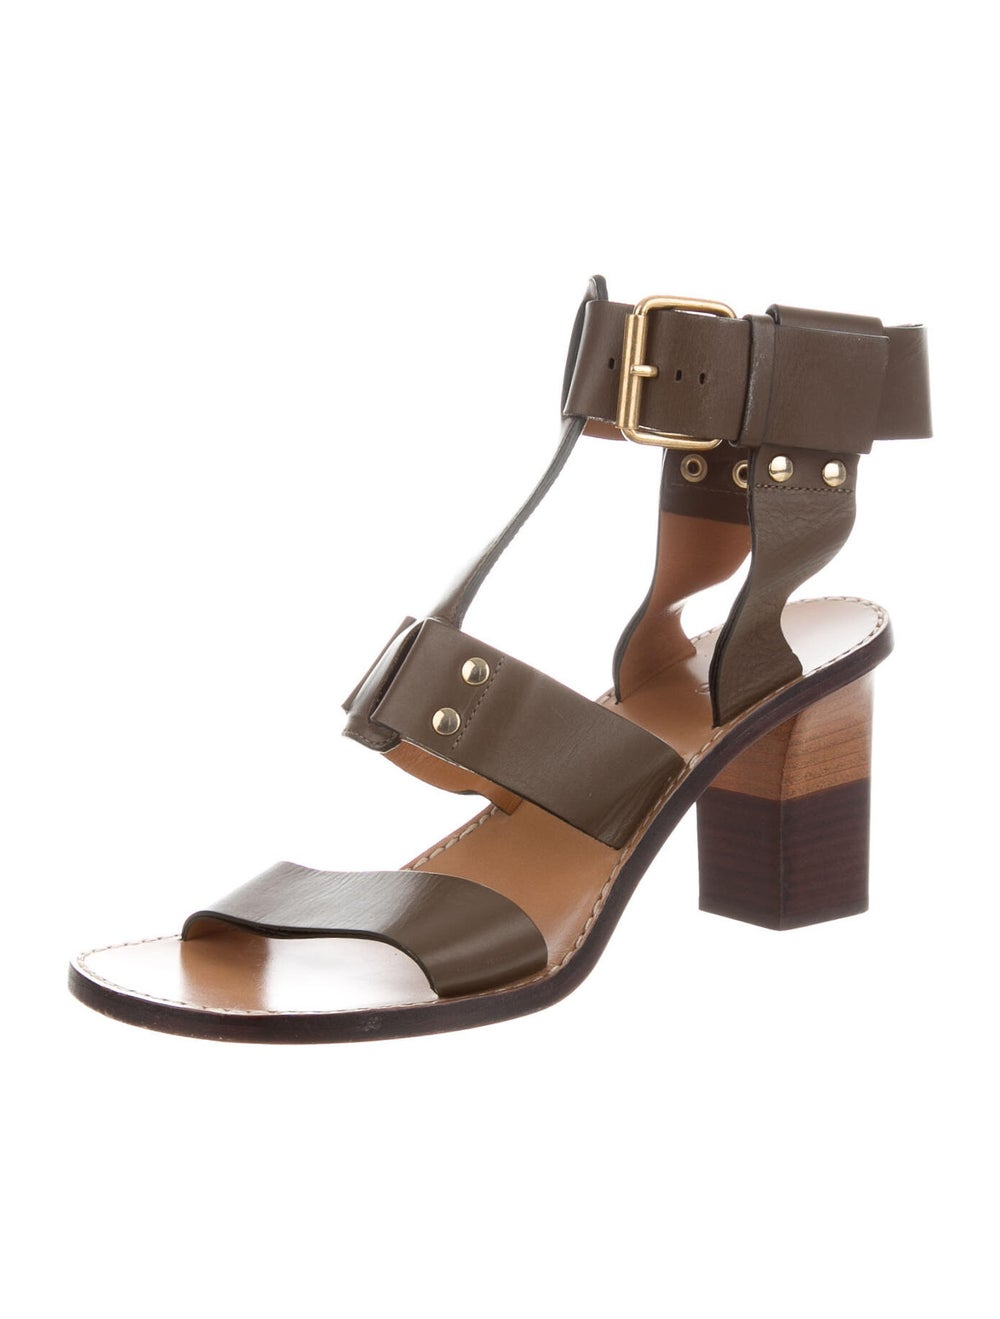 Chloé Leather Gladiator Sandals - image 2